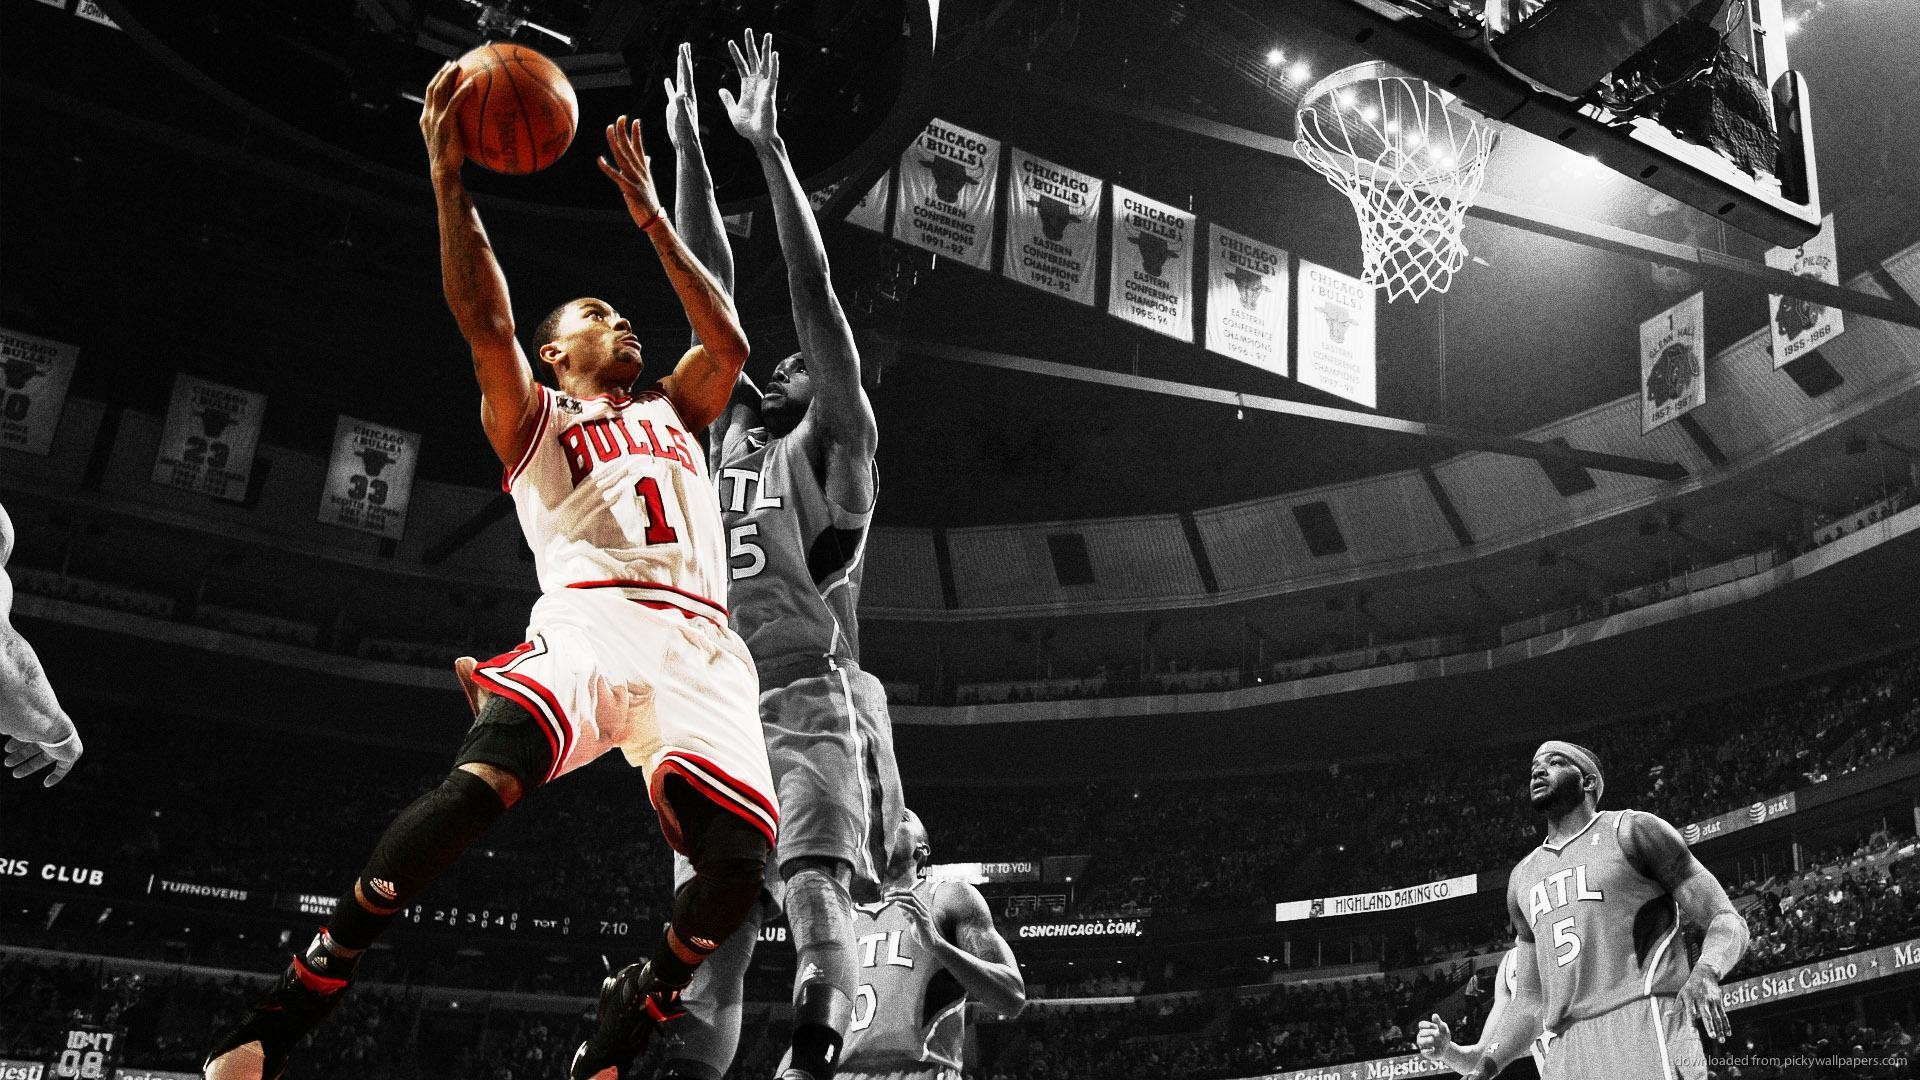 Derrick rose dunk on lebron james wallpaper